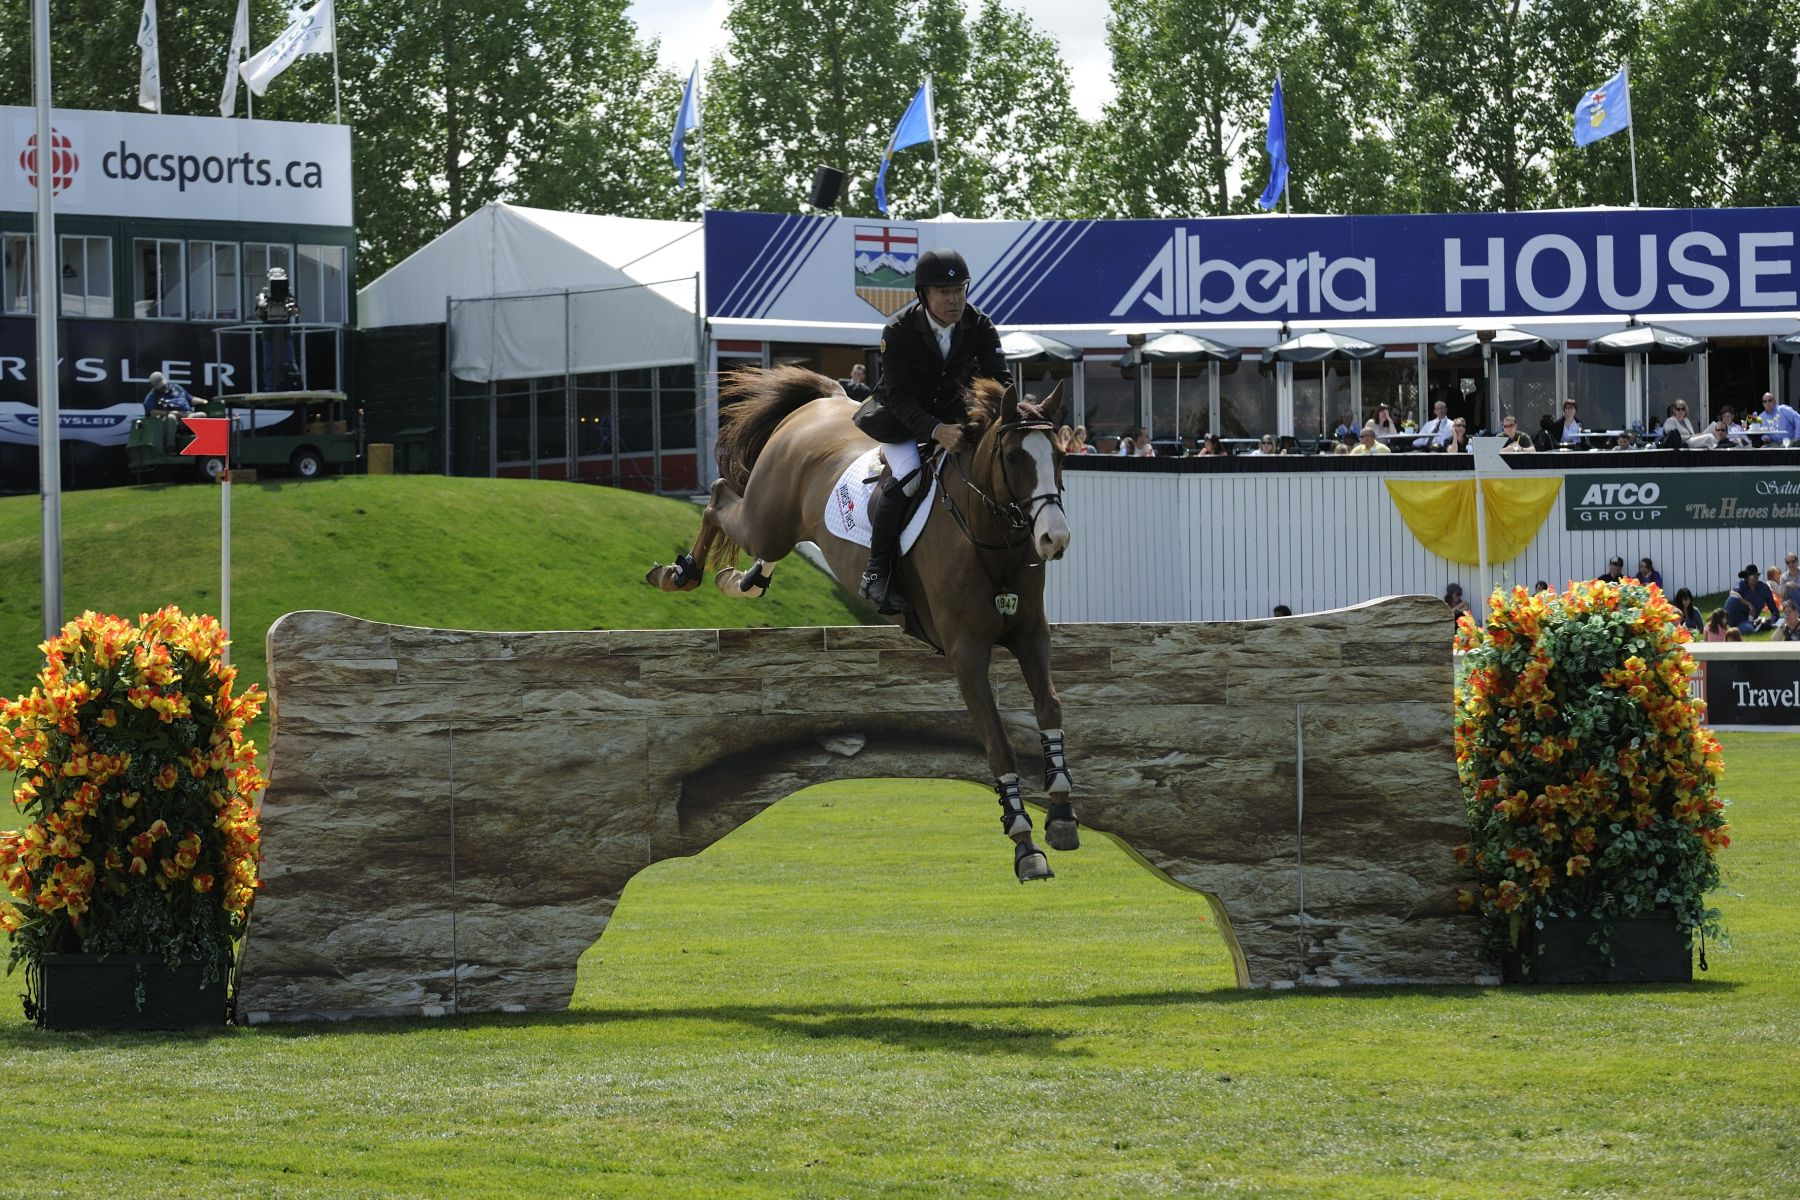 It focusses on the organization and hosting of show jumping tournaments of unmatched quality for junior, amateur and professional athletes, in a manner that reflects basic family values in a clean, green and welcoming environment that celebrates the horse and encourages the breeding and training of quality sport horses and the teaching and development of athletes.